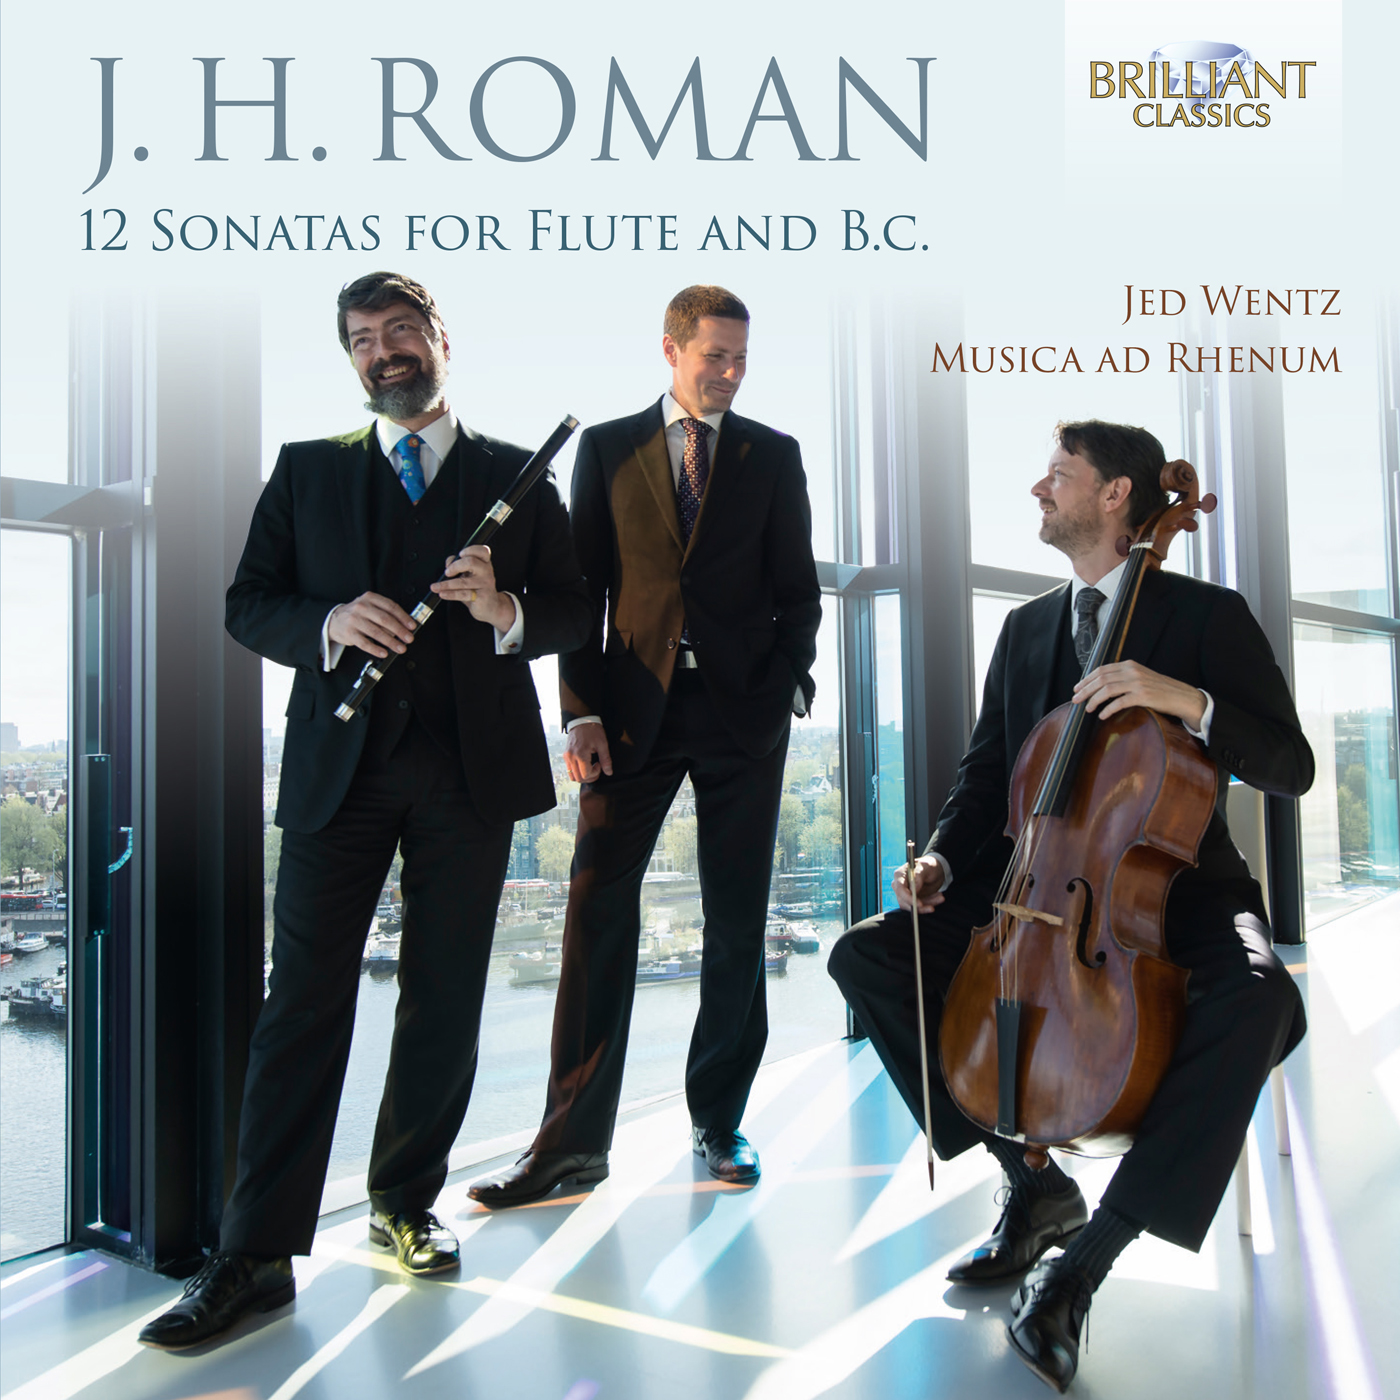 J.H. Roman: 12 Sonatas for Flute and B.C.